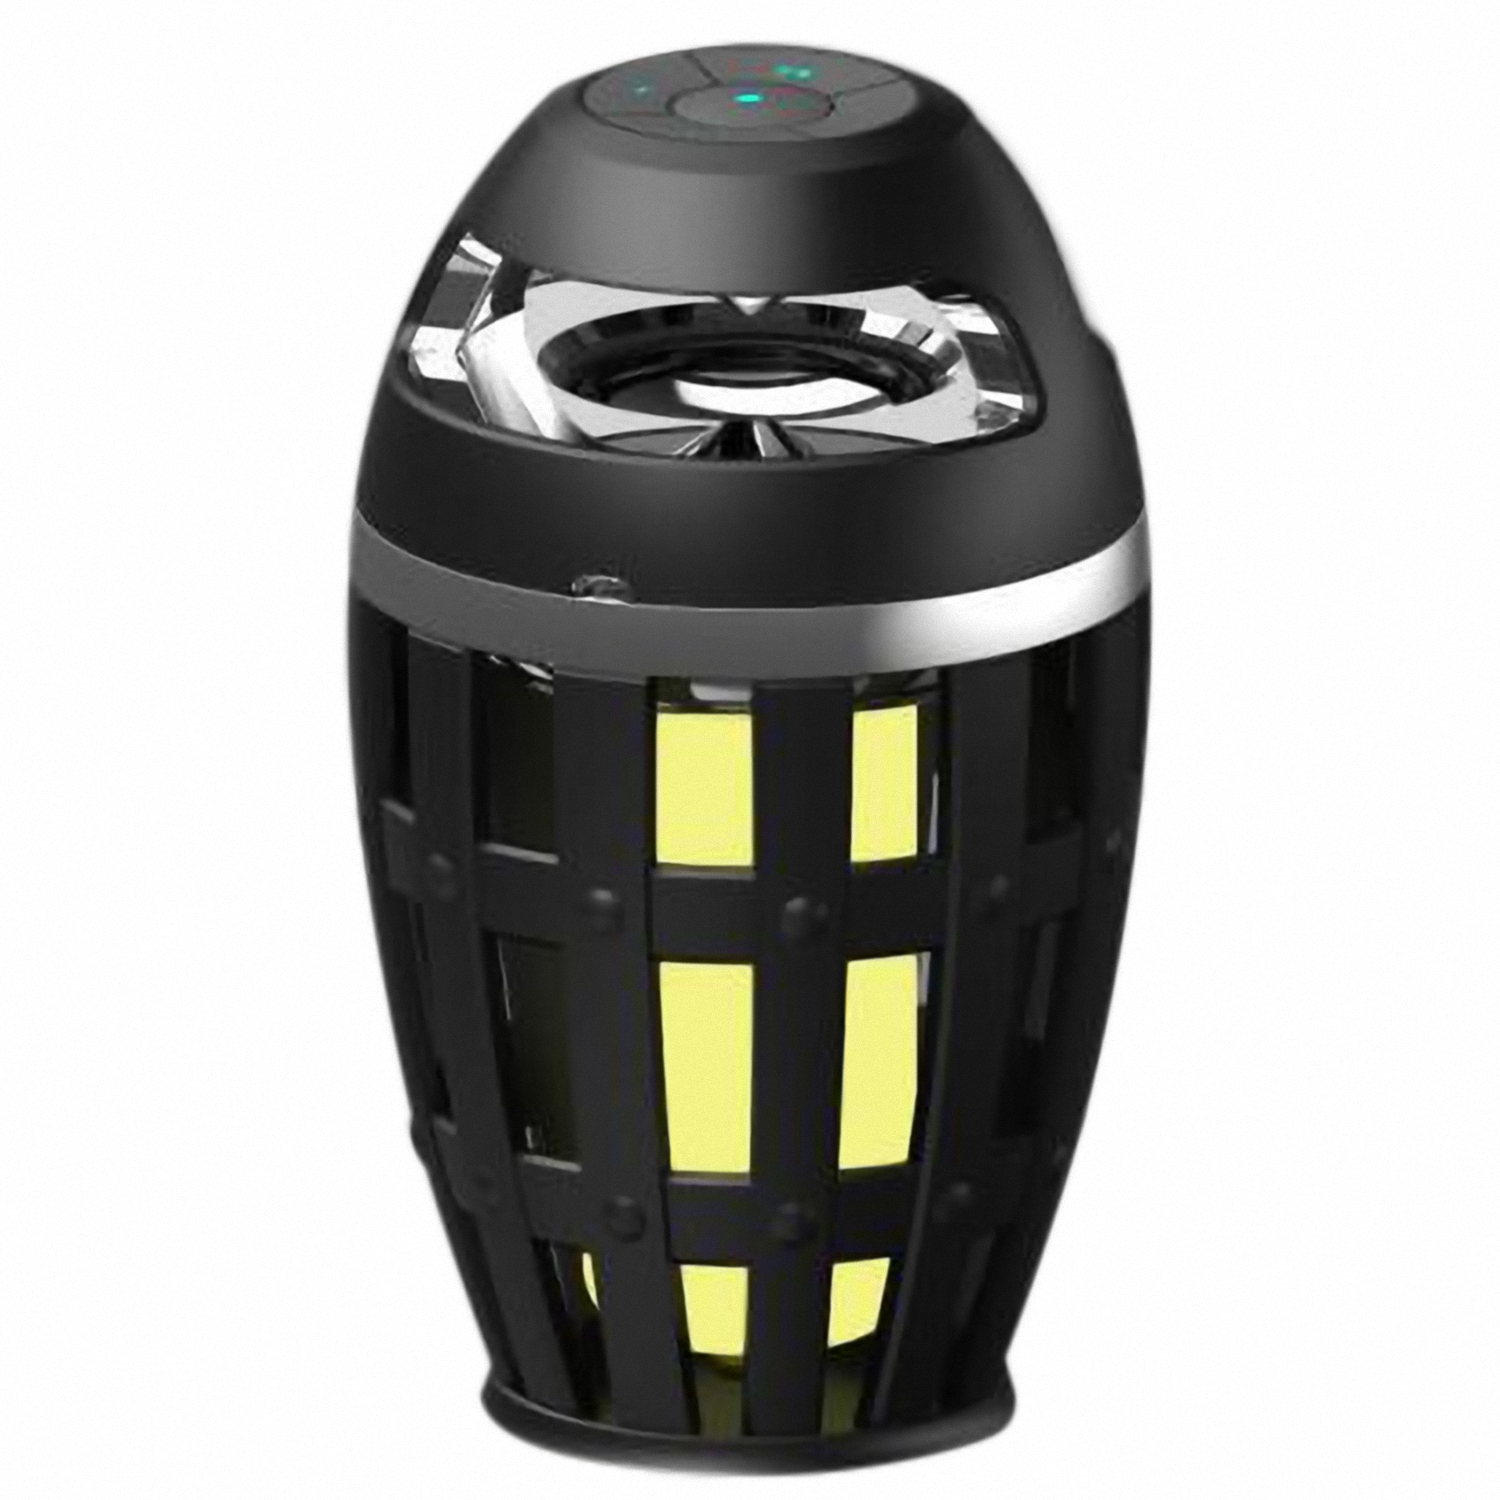 LED Table Lamp Bluetooth Speaker Night Light Outdoor/Indoor Portable Stereo Wireless Speakers,Atmosphere Dancing Flicker Flame